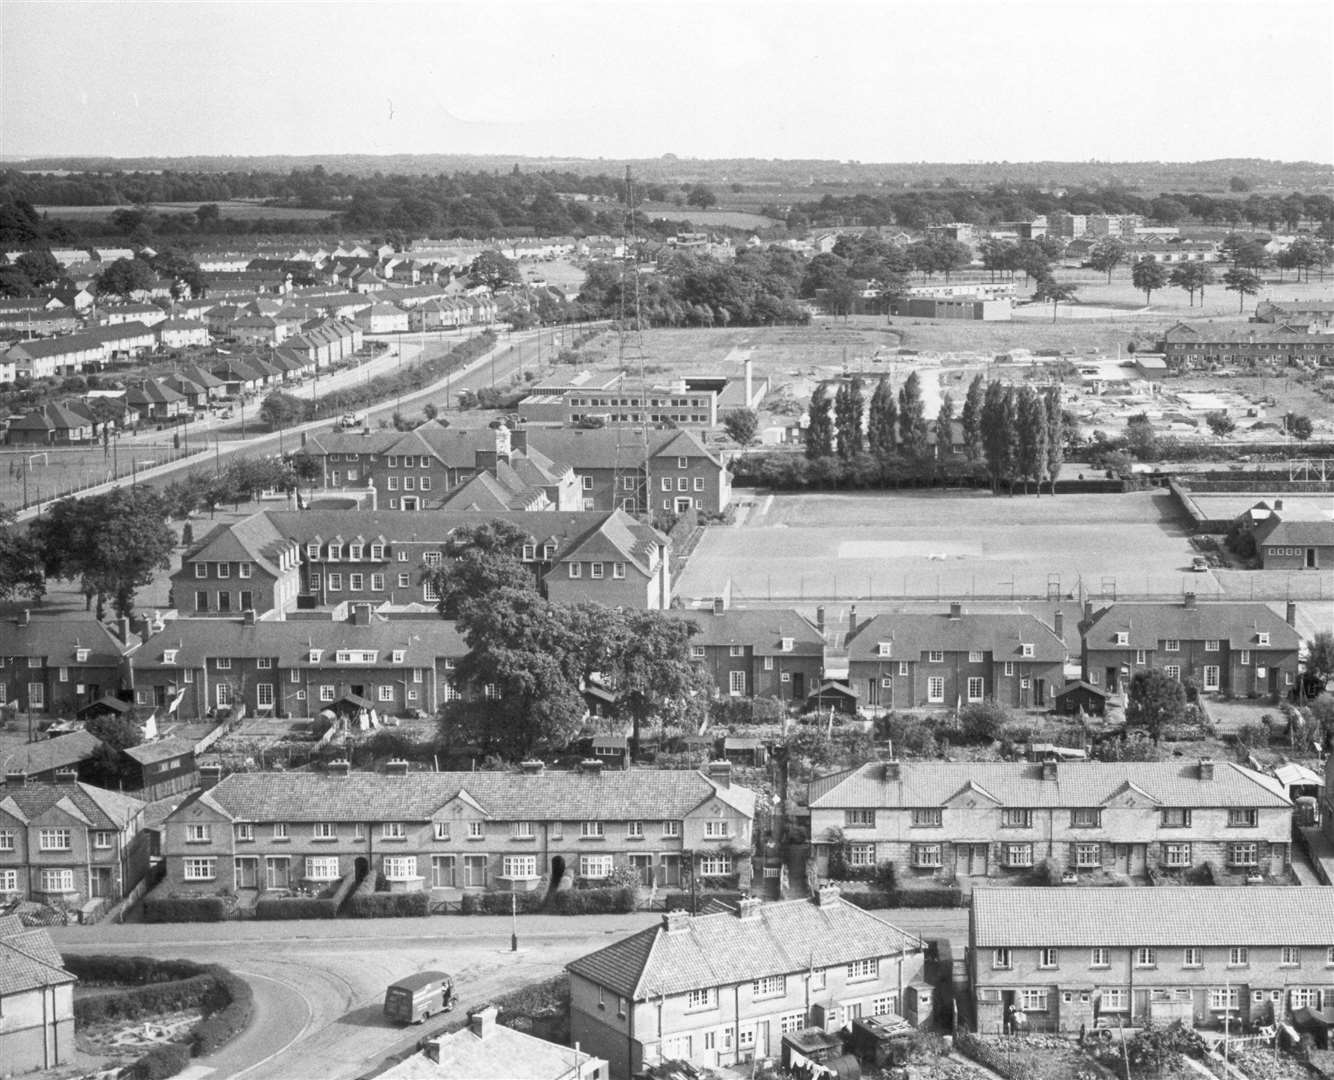 An aerial view of the Sutton Road headquarters in 1959